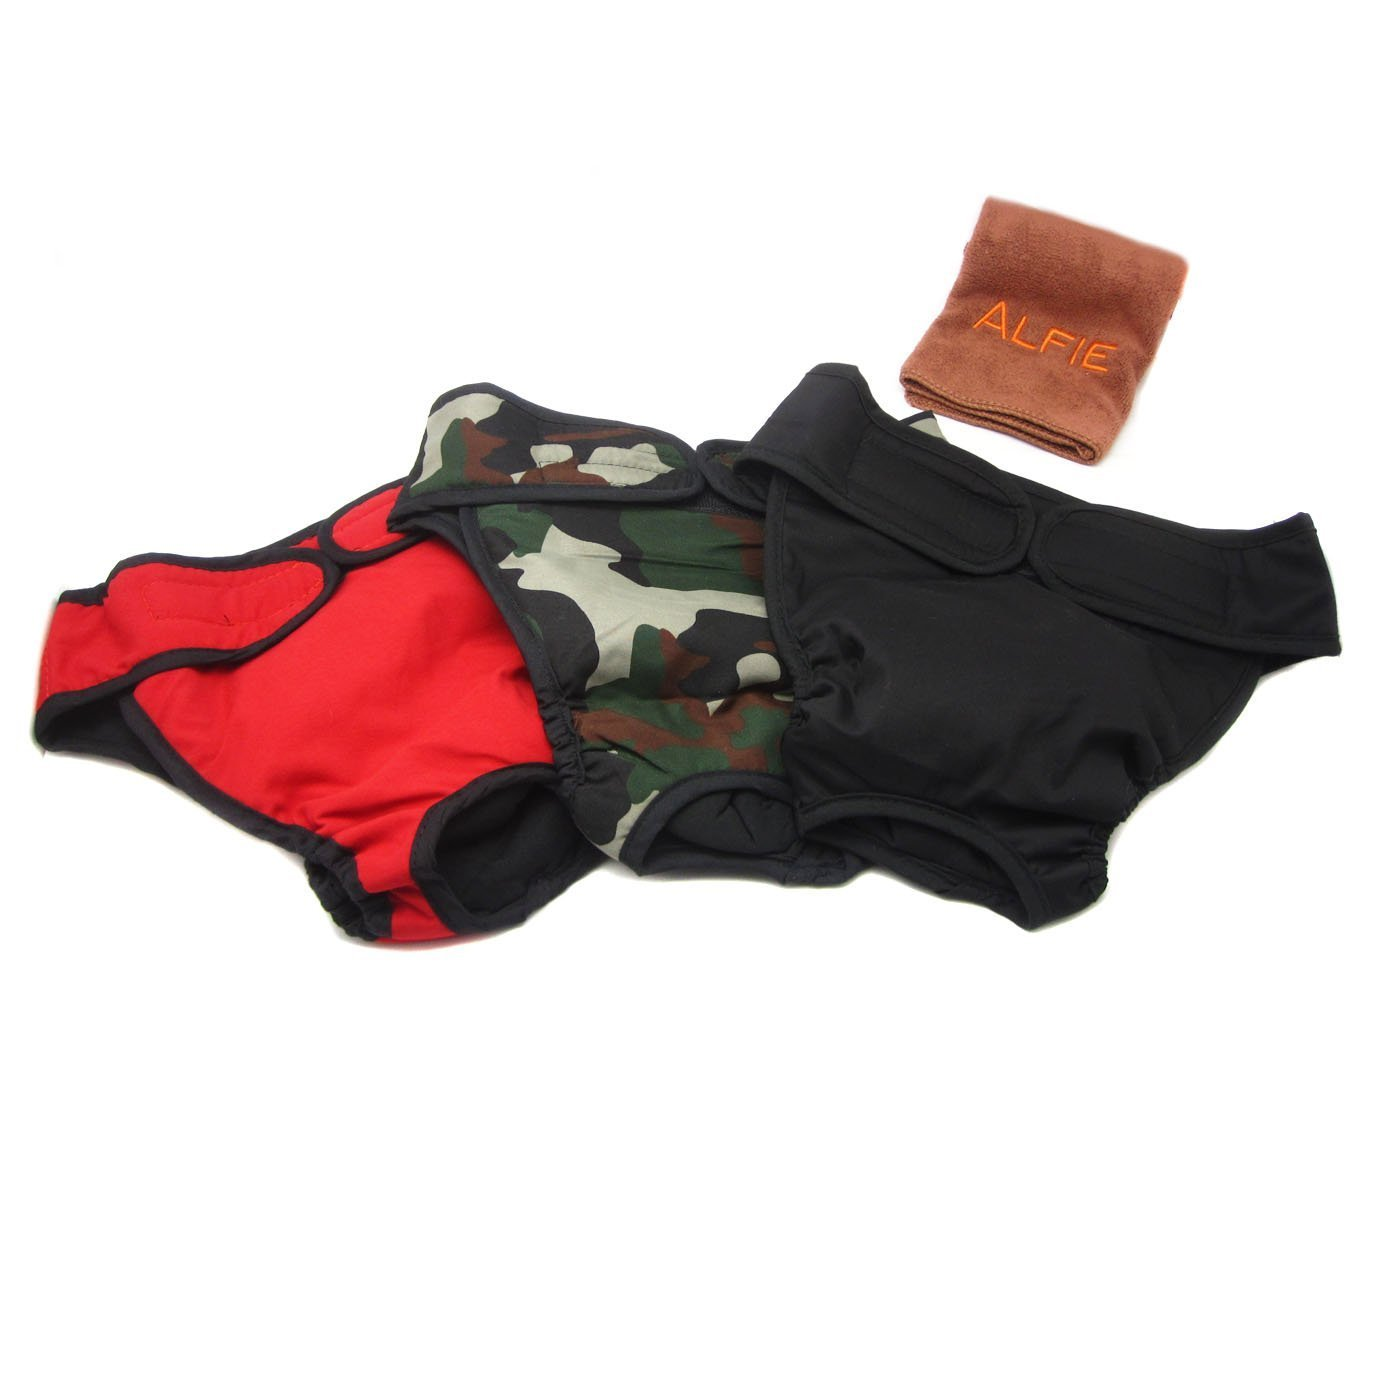 Alfie Pet by Petoga Couture - Max Diaper Dog Sanitary Pantie with Velcro Closure 3-Piece Set with Microfiber Fast-Dry Washcloth - Colors: Black, Camo and Red, Size: XXL (for Girl Dogs)